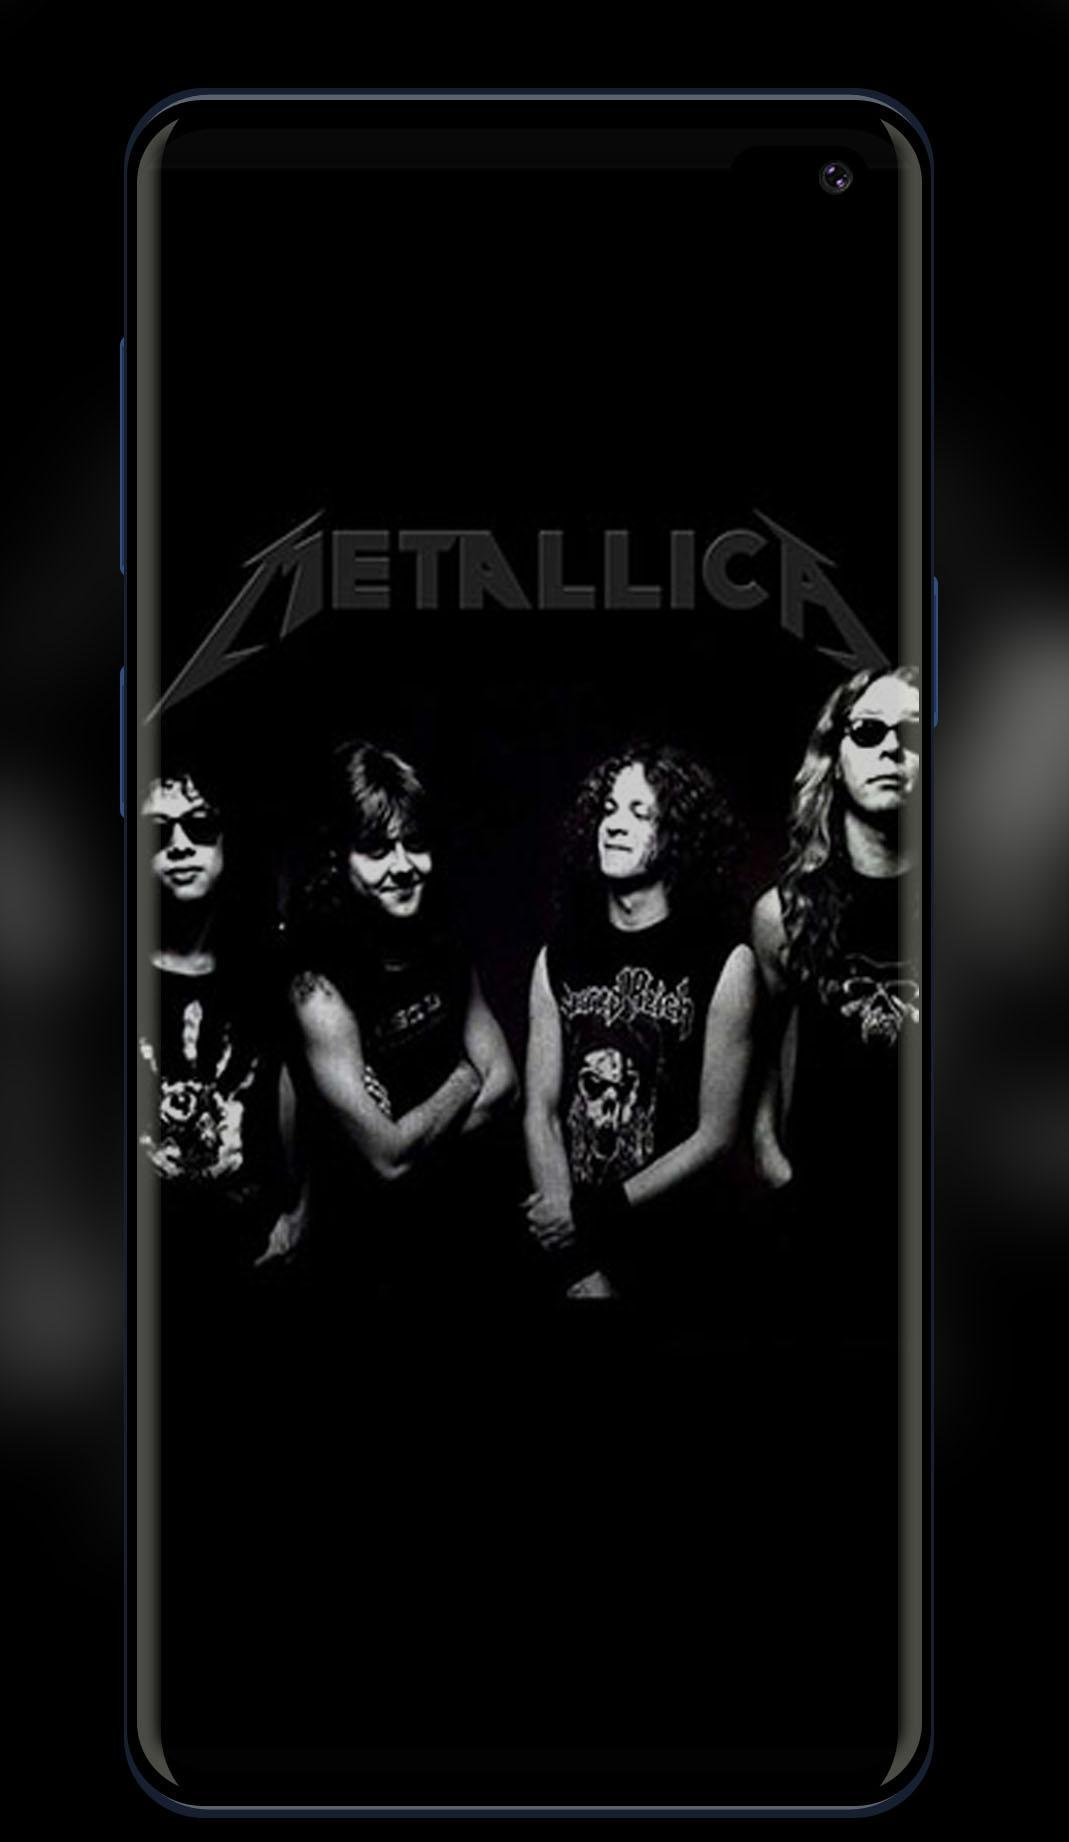 Metallica Wallpapers Hd For Android Apk Download